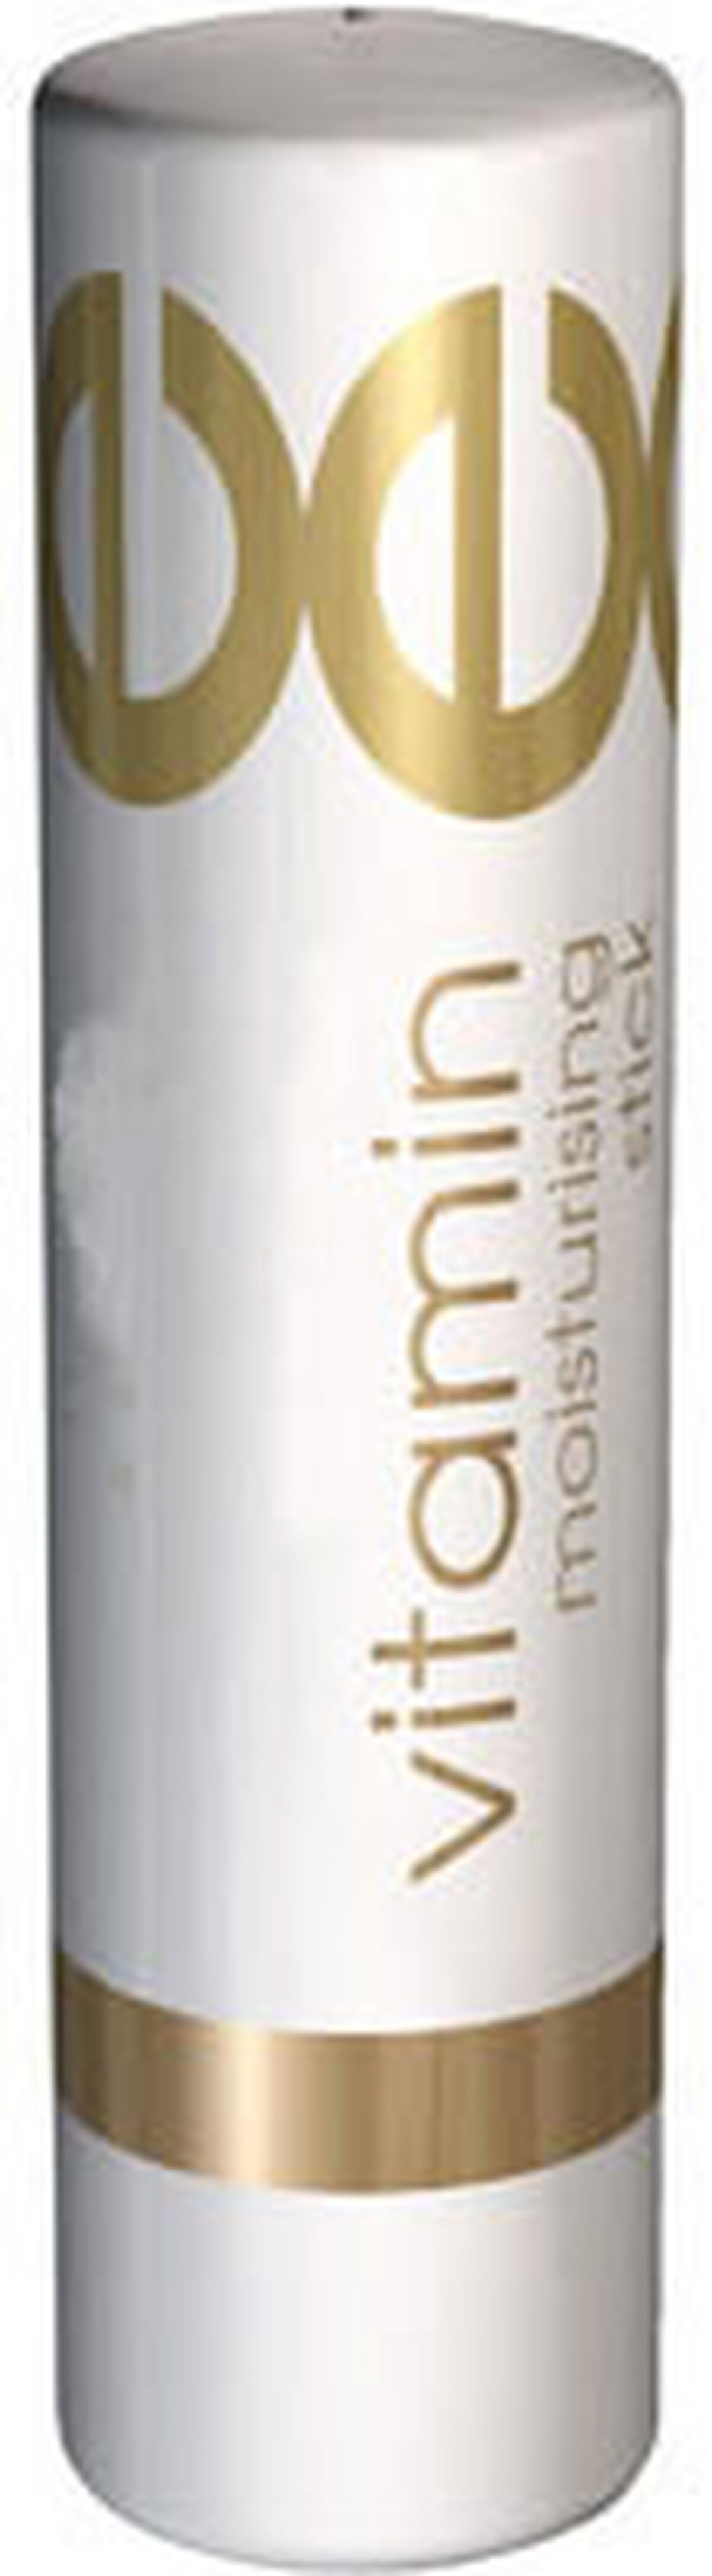 Natural Vitamin E Moisturising Stick | Vitamin World | Tuggl